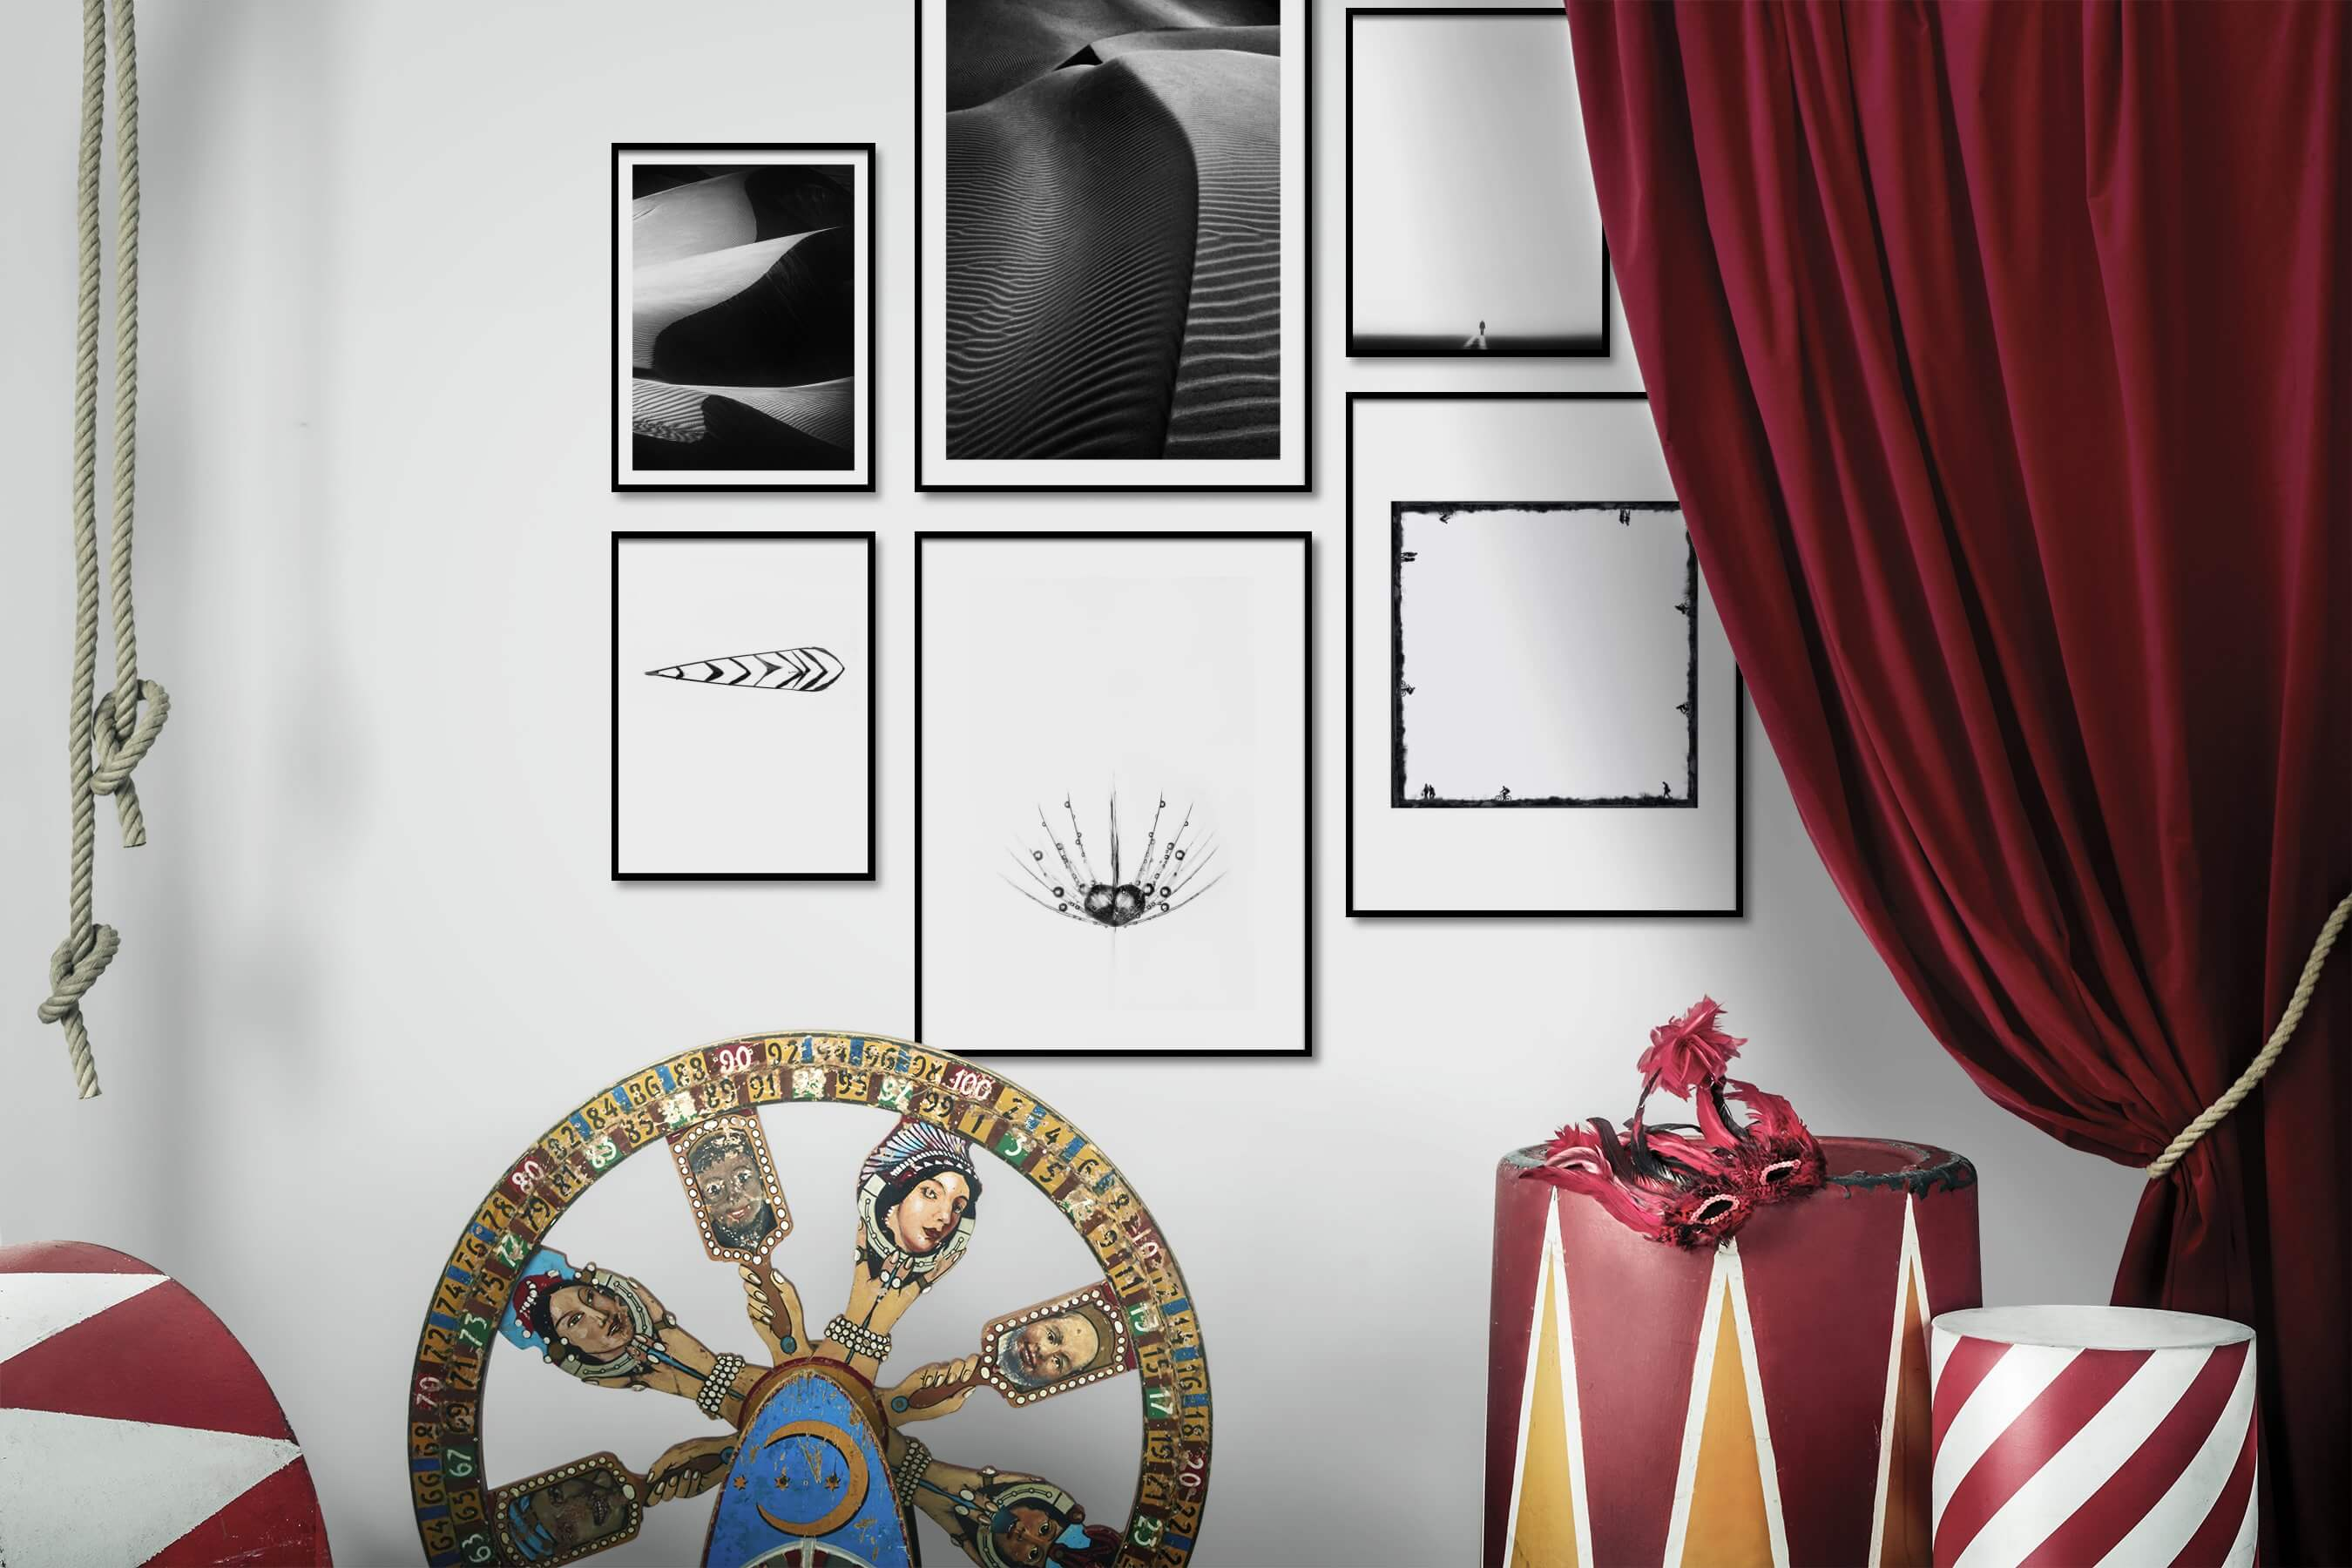 Gallery wall idea with six framed pictures arranged on a wall depicting Black & White, For the Moderate, Nature, For the Minimalist, Bright Tones, Flowers & Plants, Mindfulness, and Country Life